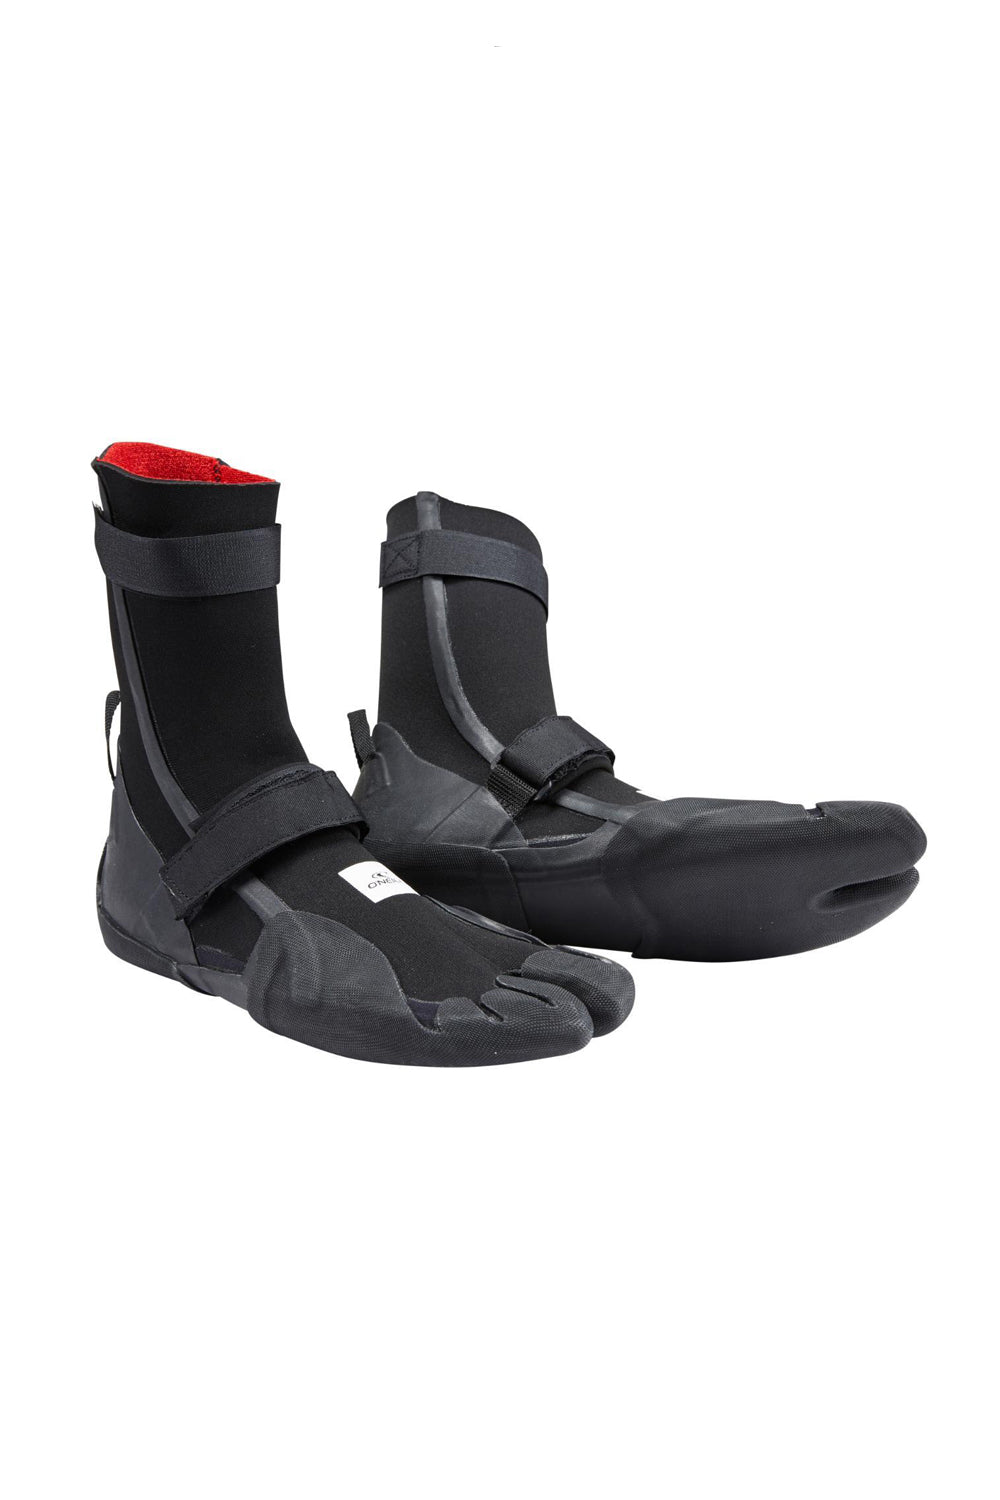 O'Neill Defender 3mm Split Toe Wetsuit Boot - Black